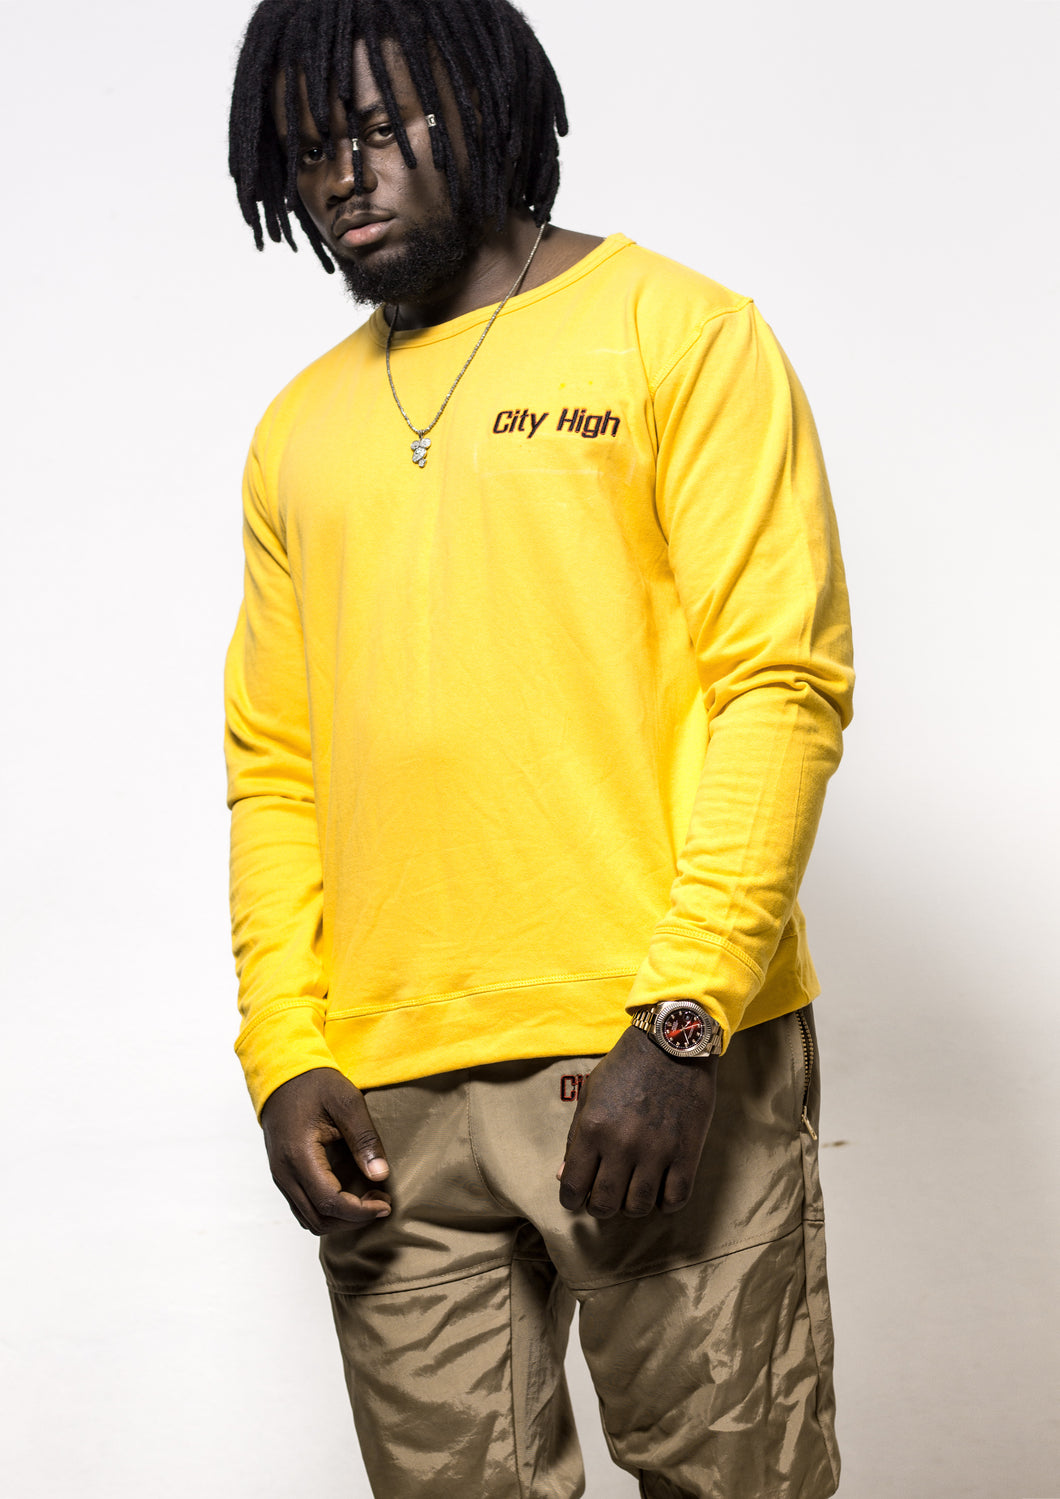 [menswear Mellow-fleece yellow long-sleeve top] - City High